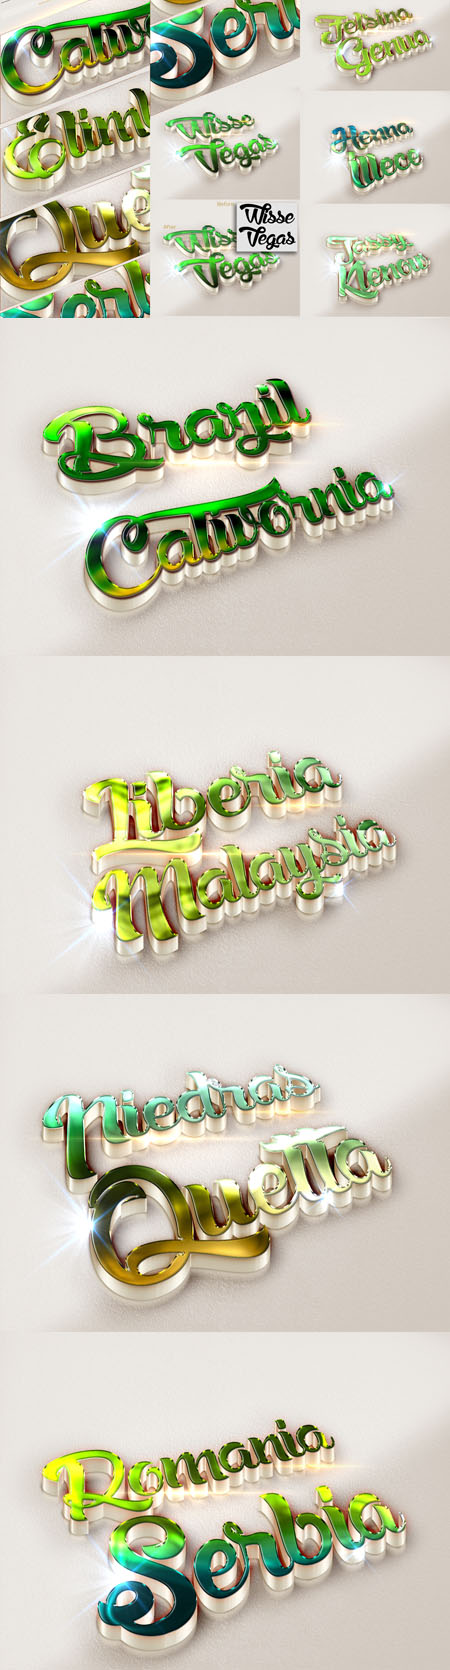 10 3D Text Effects Green Colour for Photoshop